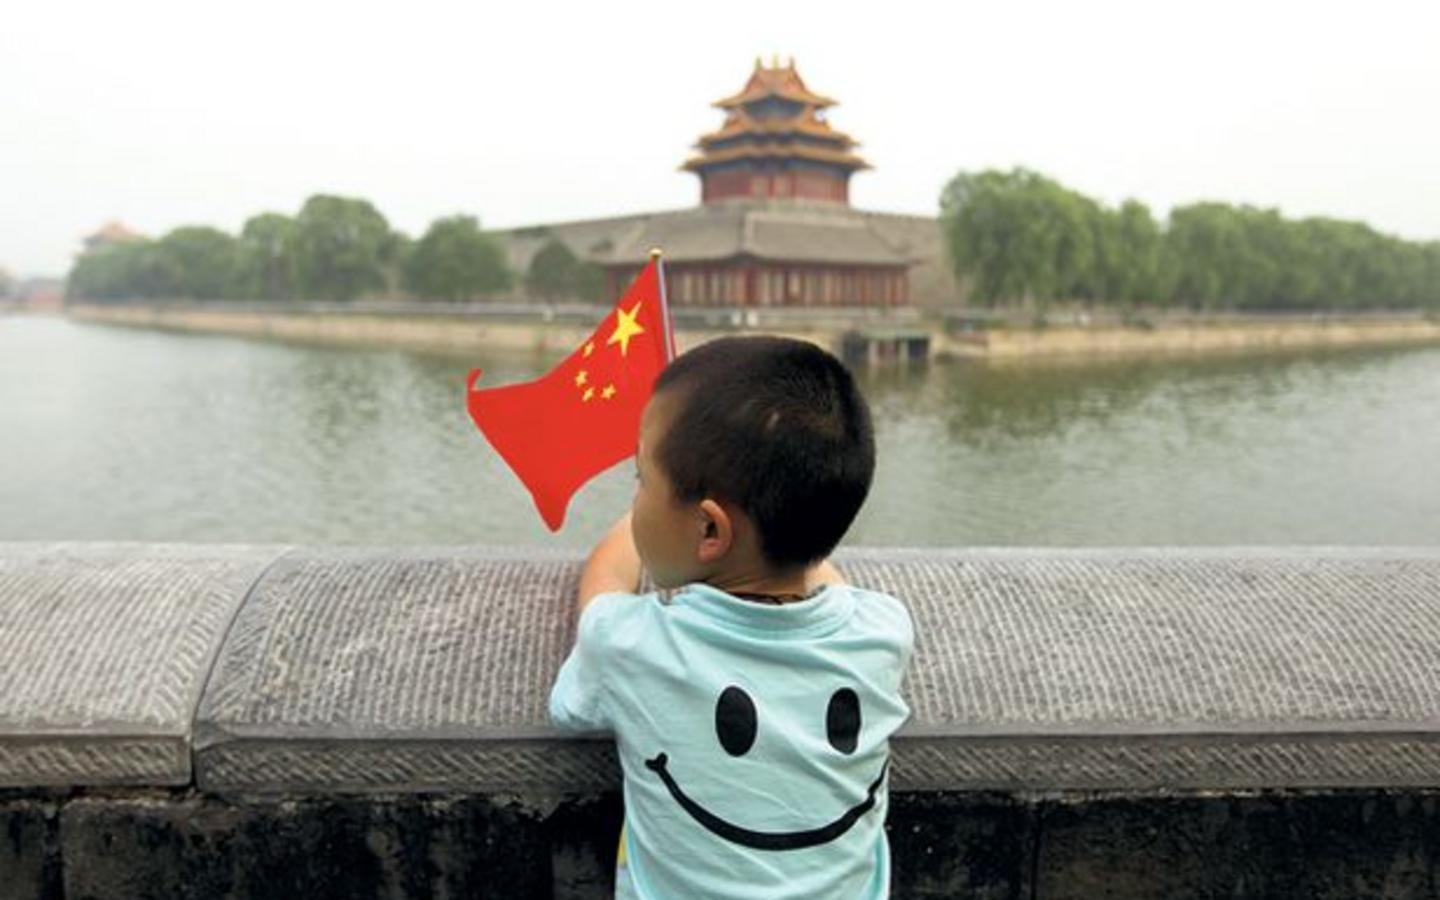 China officially ends the controversial 'one child policy'